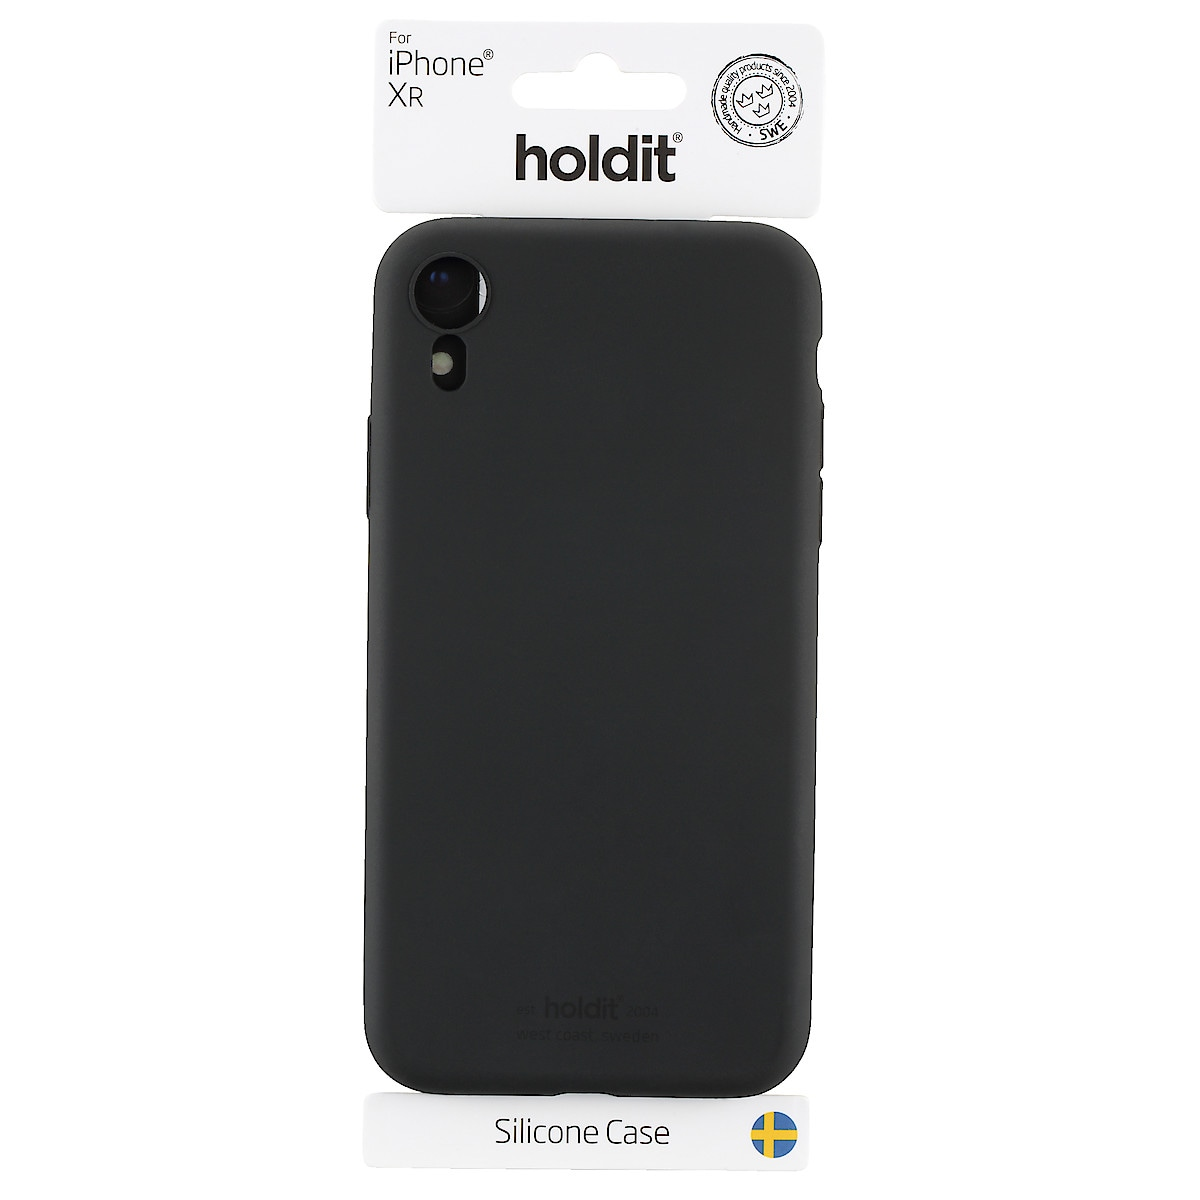 Holdit mobildeksel i silikon for iPhone XR